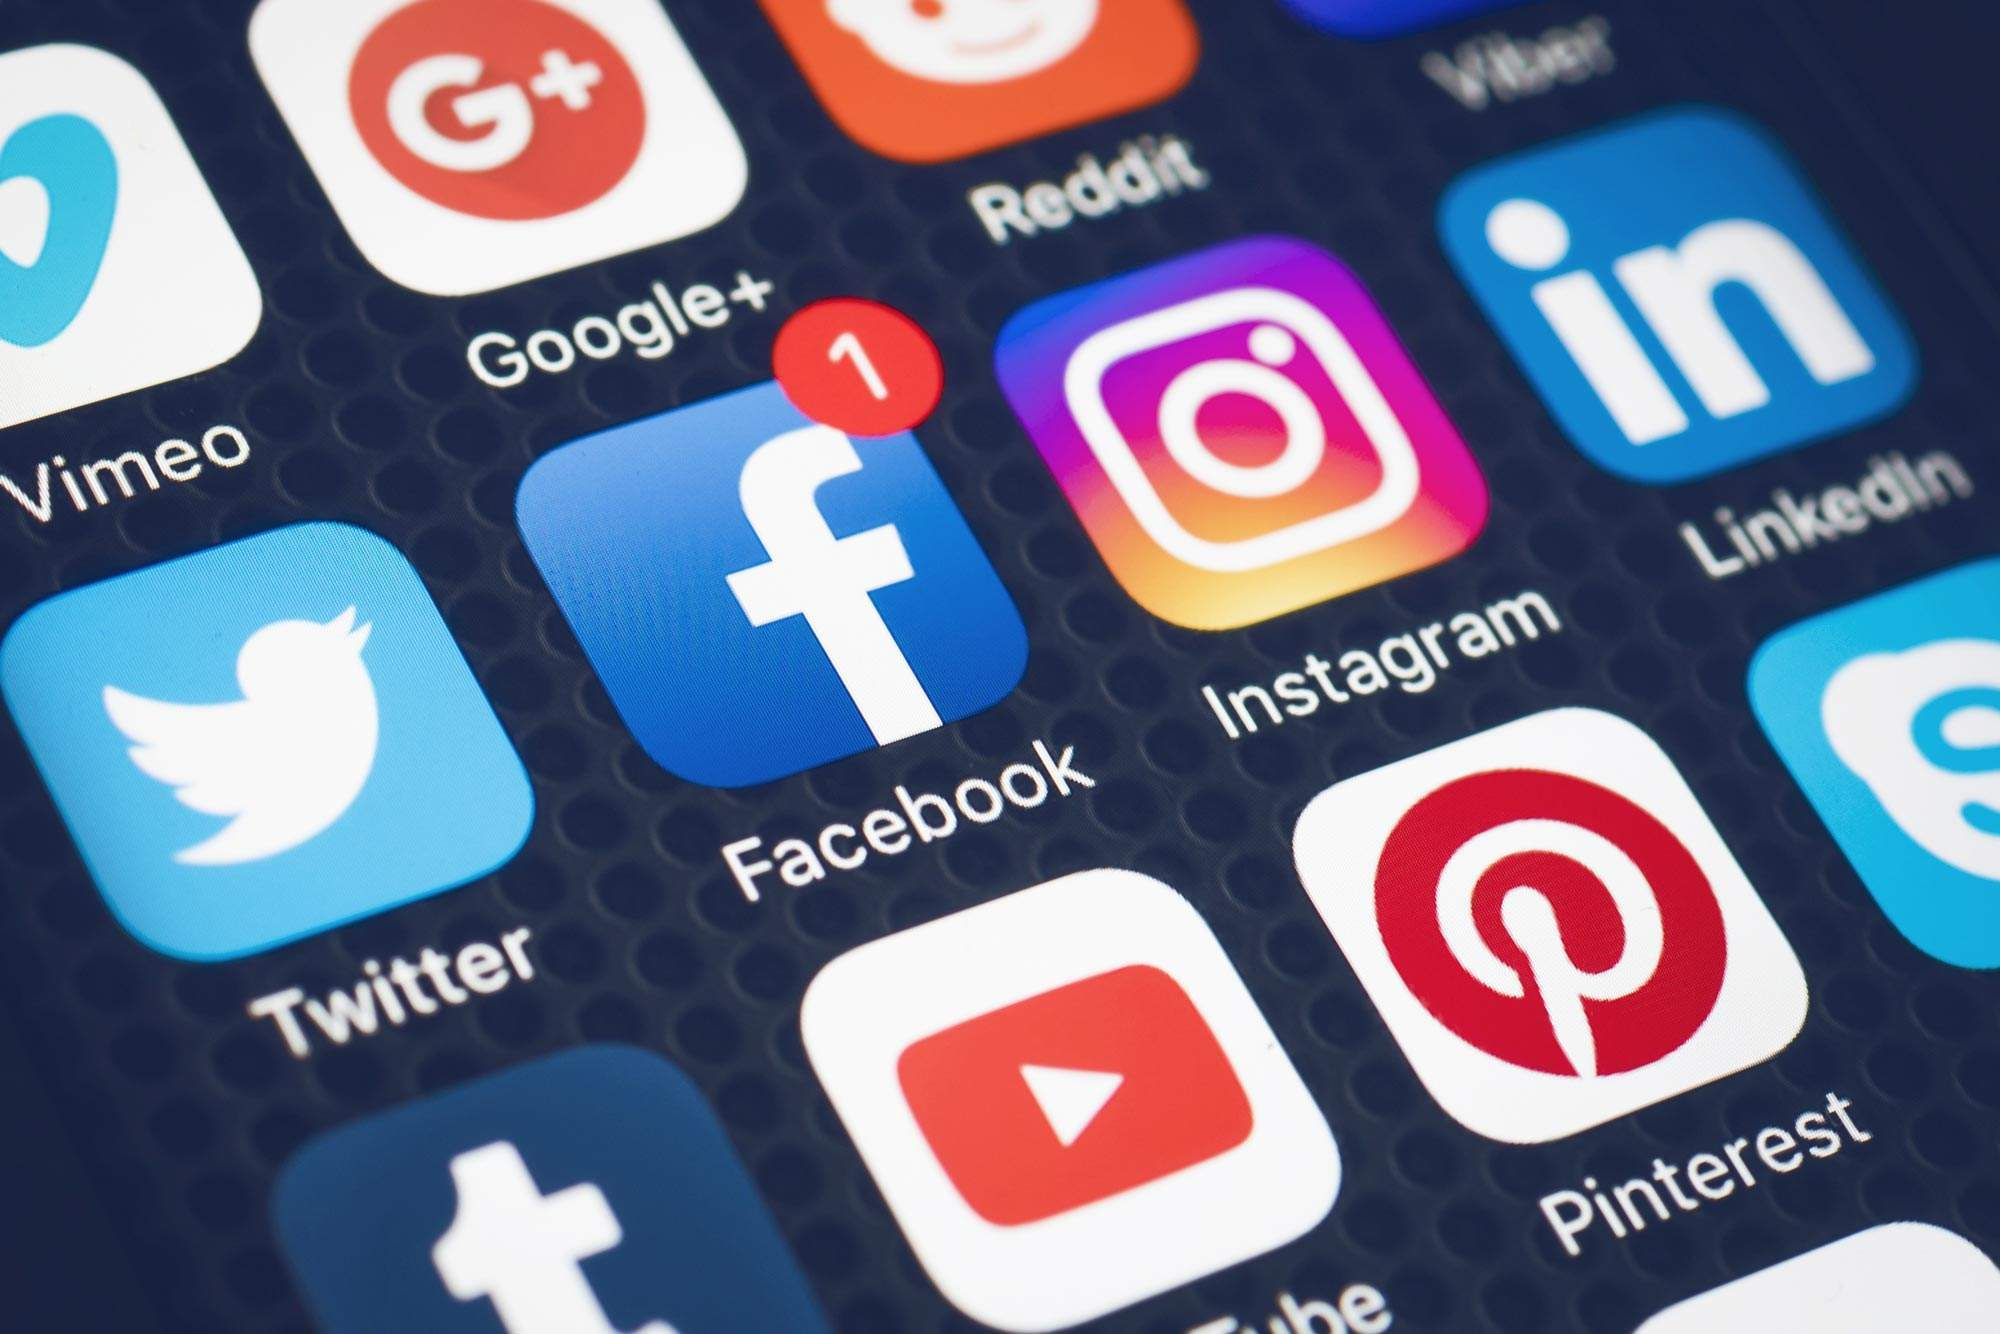 UK Digital Services Tax brings in duty on social media, search revenue